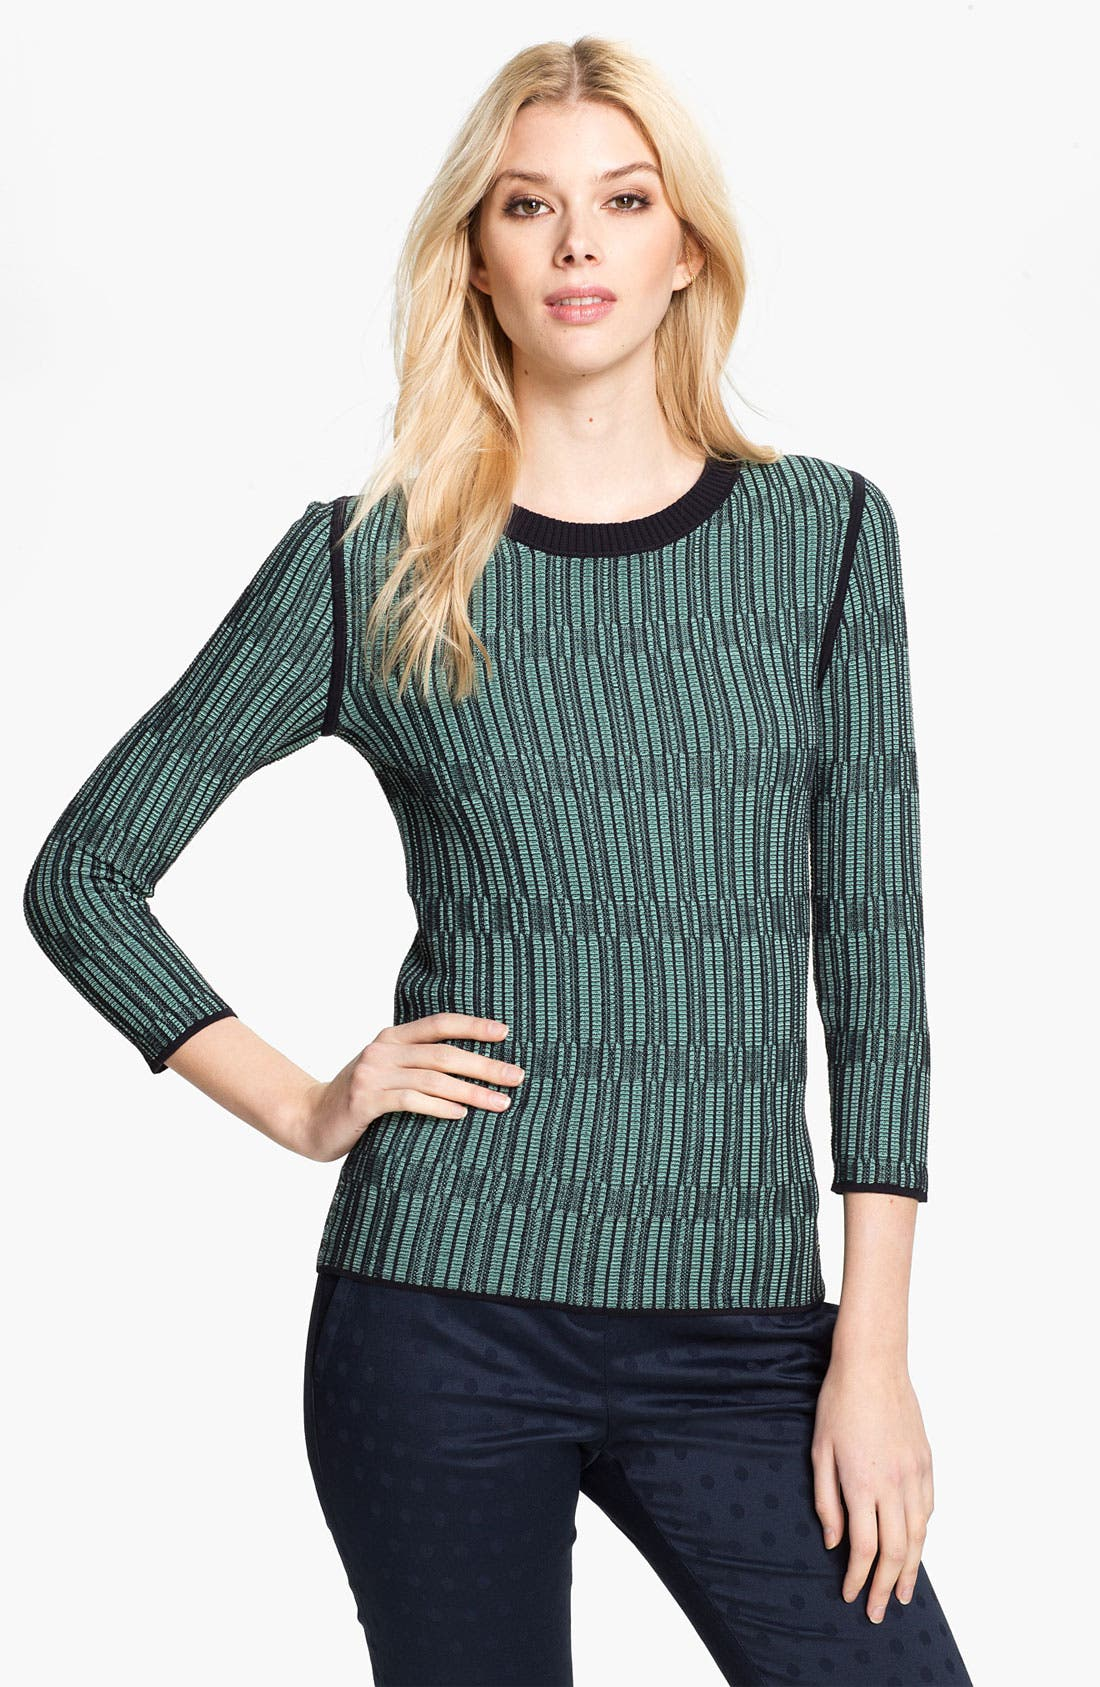 Alternate Image 1 Selected - Tory Burch 'Arielle' Sweater